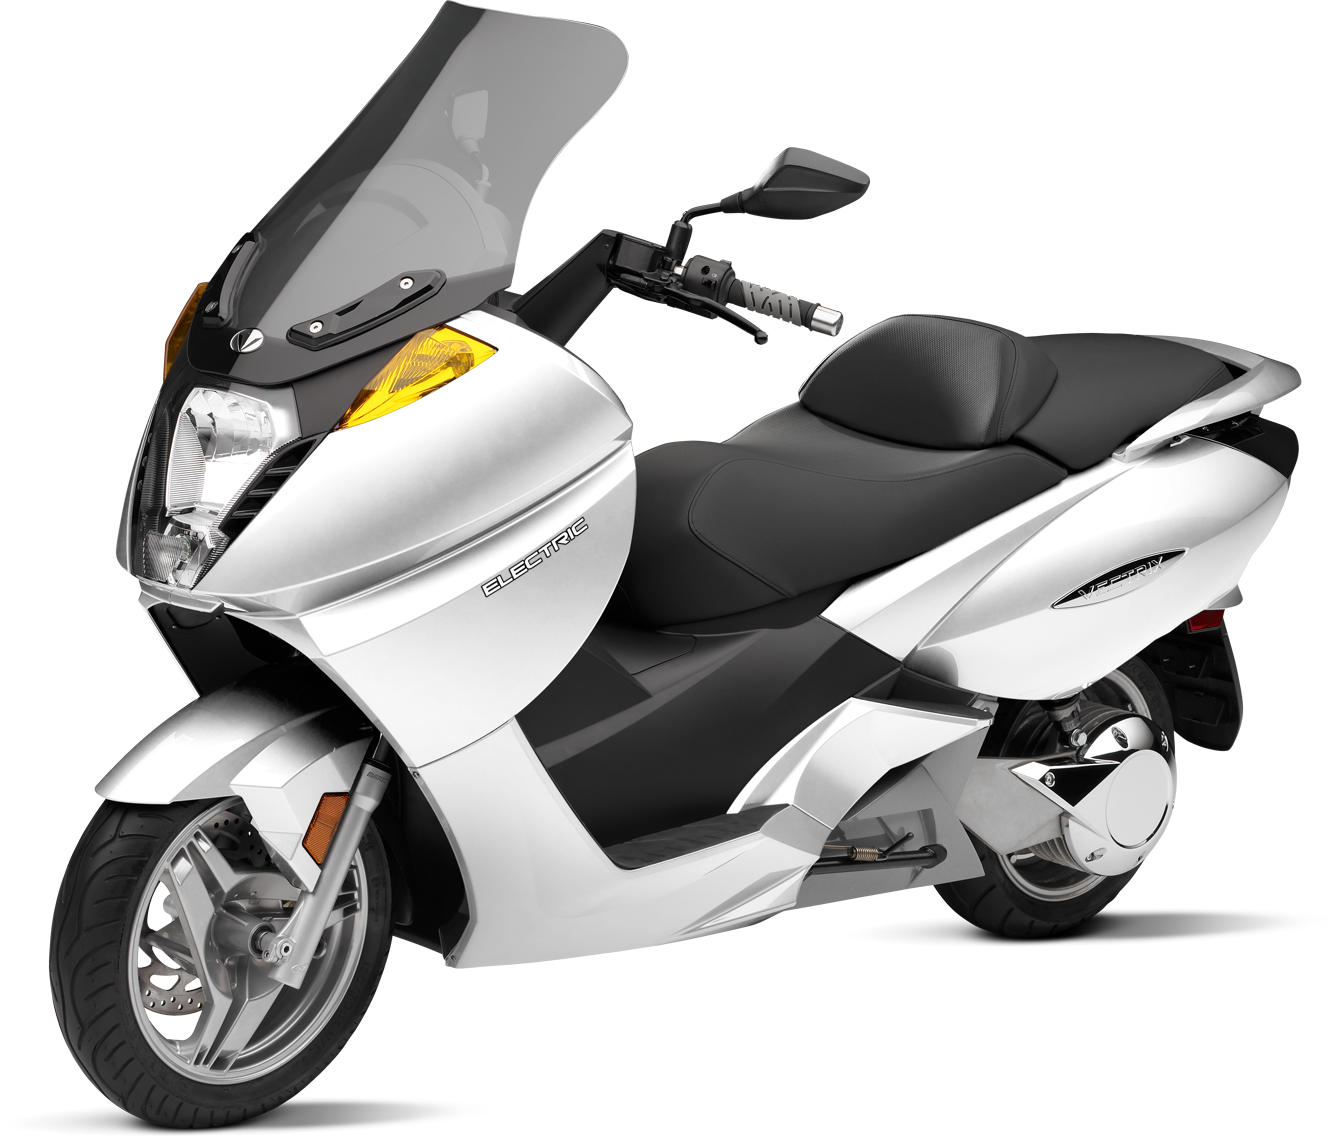 Scooter PNG images free download